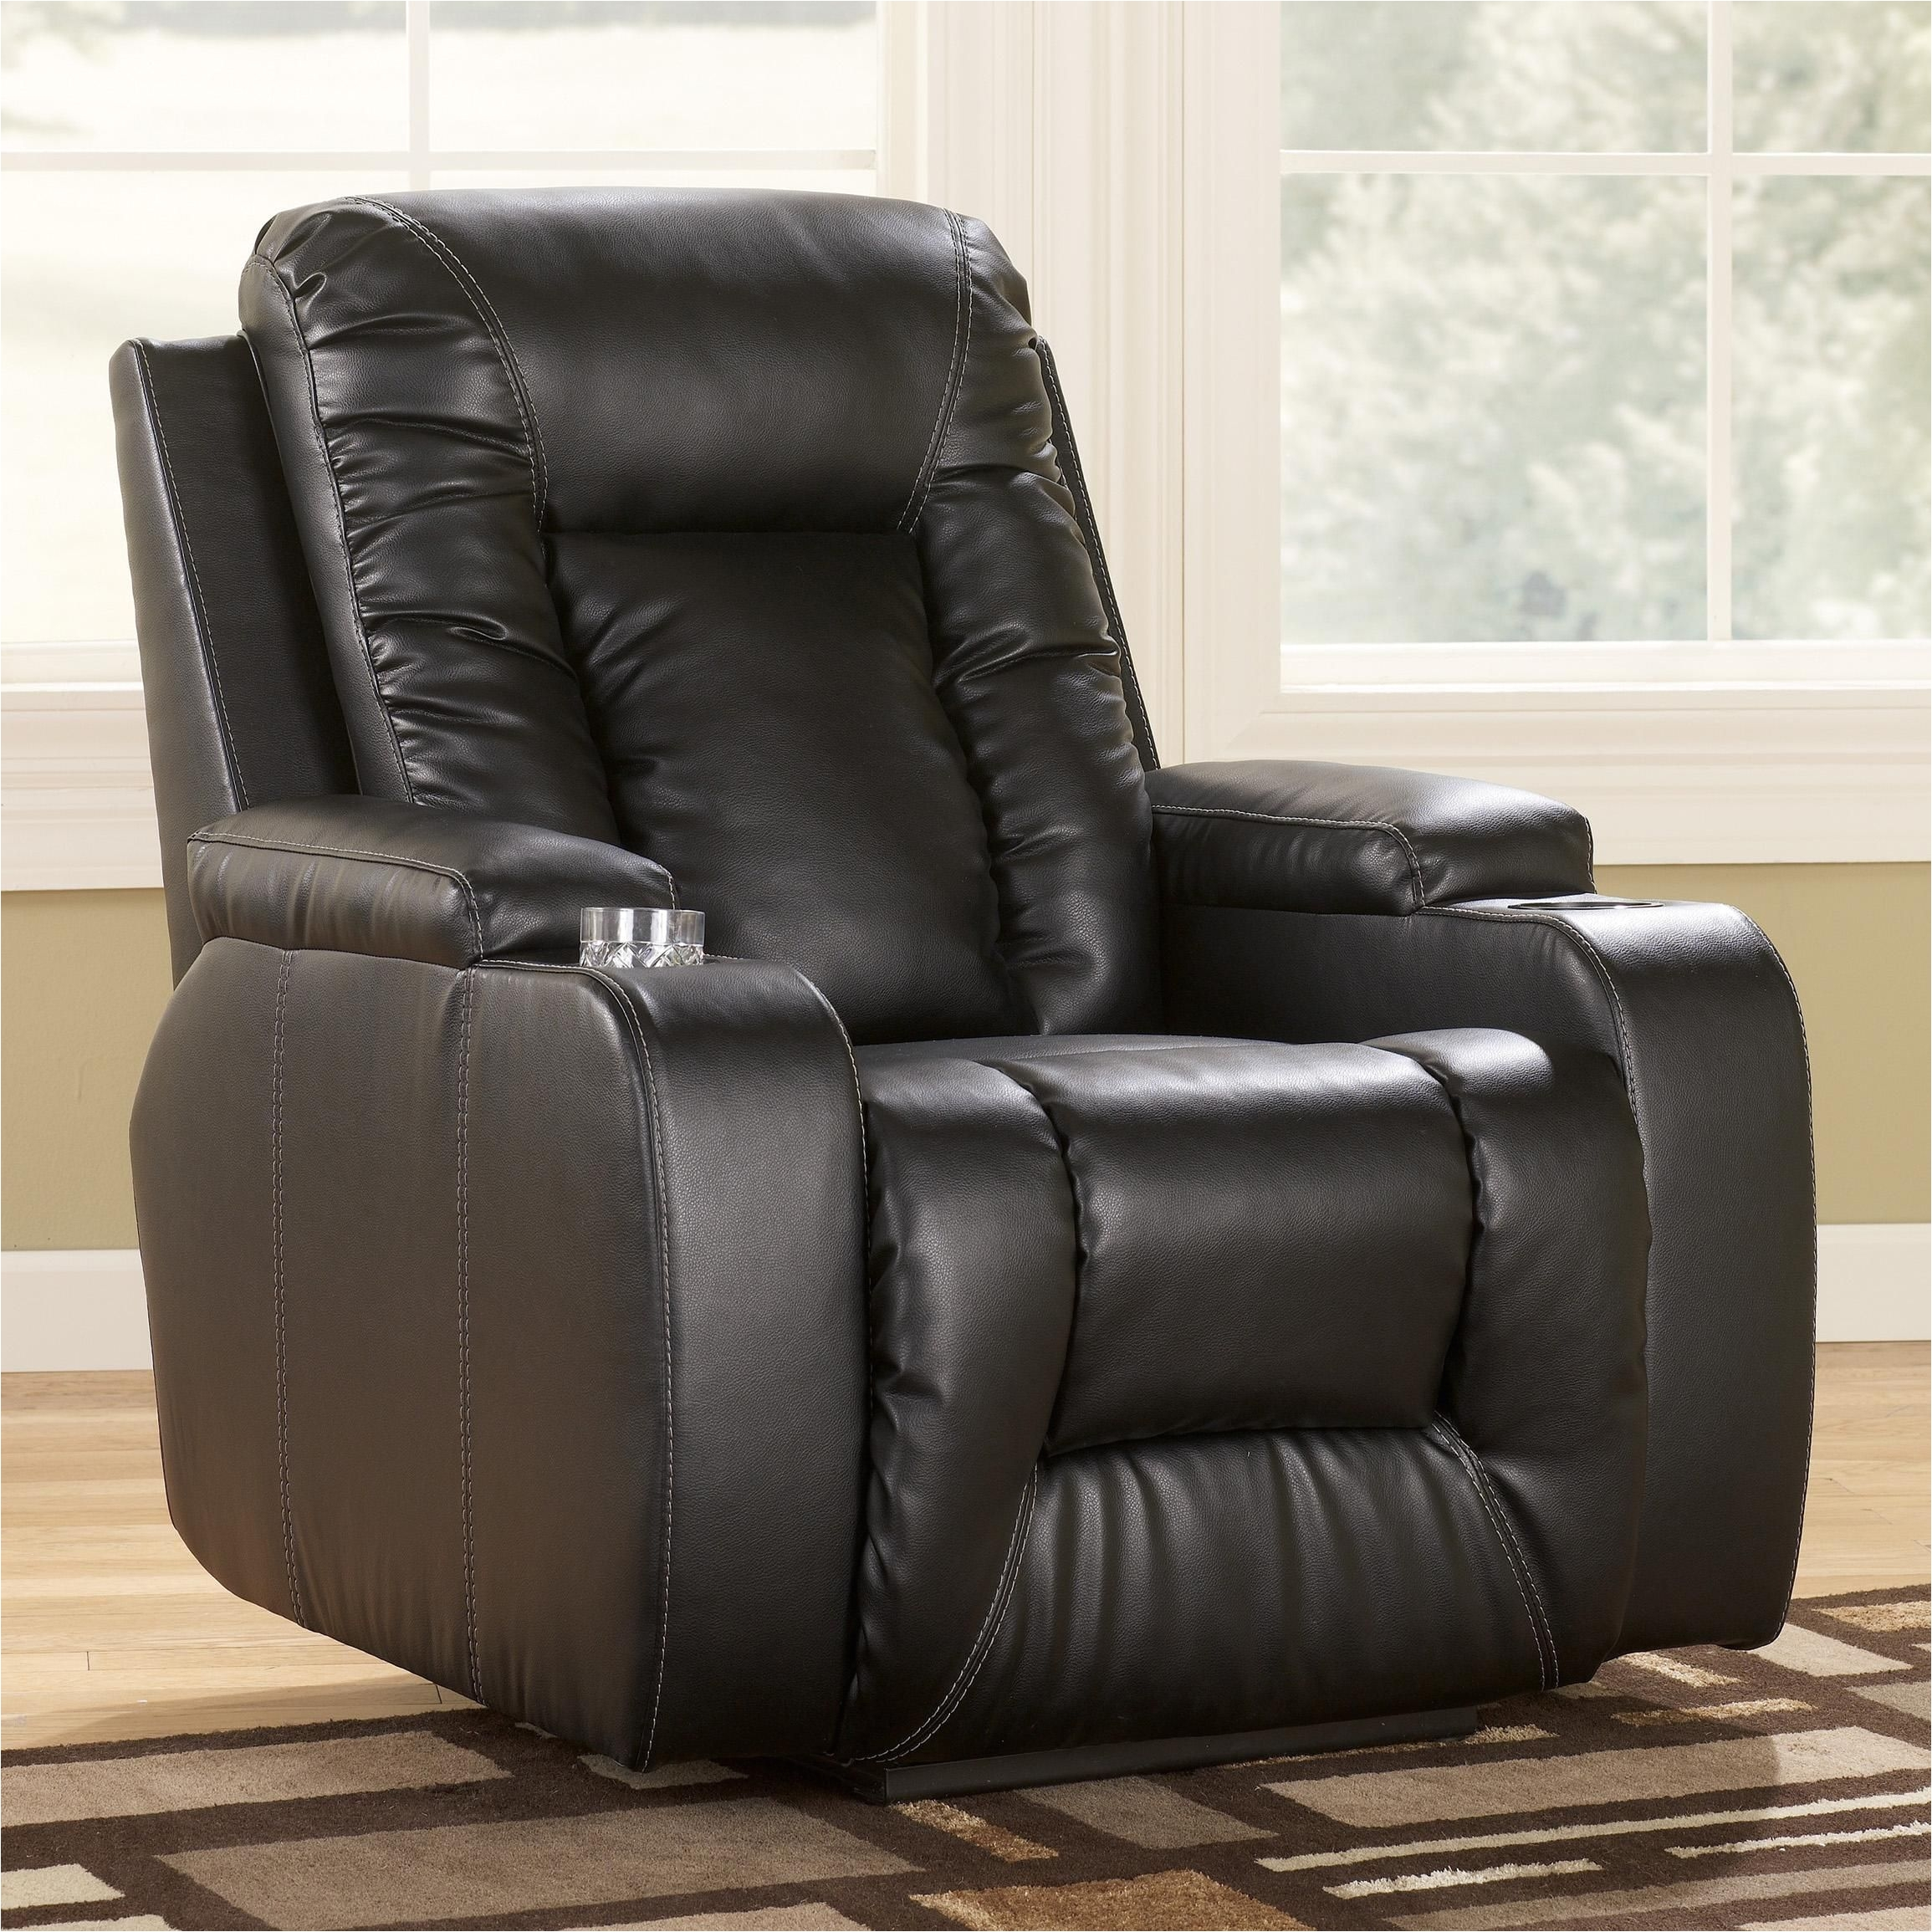 Lay Flat Power Recliner Chairs Matinee Durablend Eclipse Contemporary Recliner with Power by